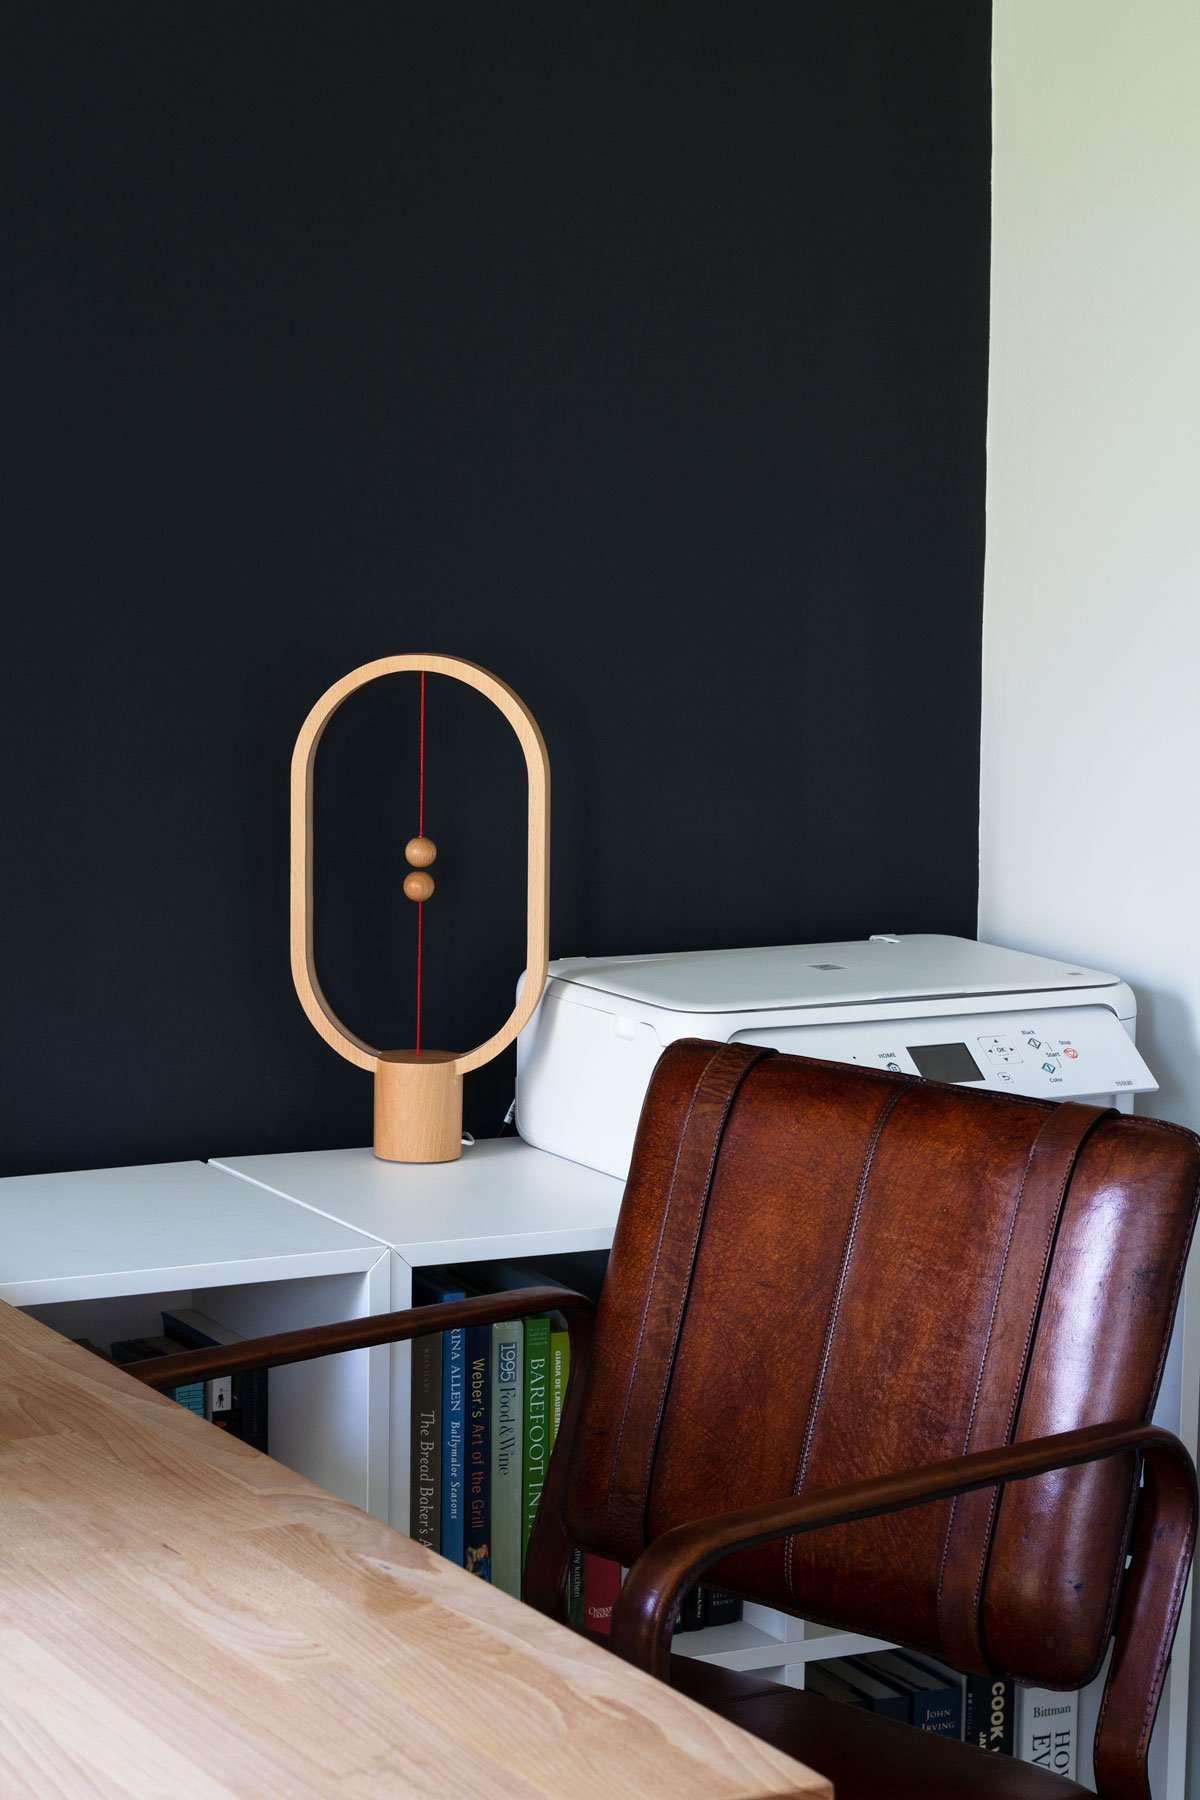 Graphic Home Office: One Room Challenge. Task lamp by Allocacoc